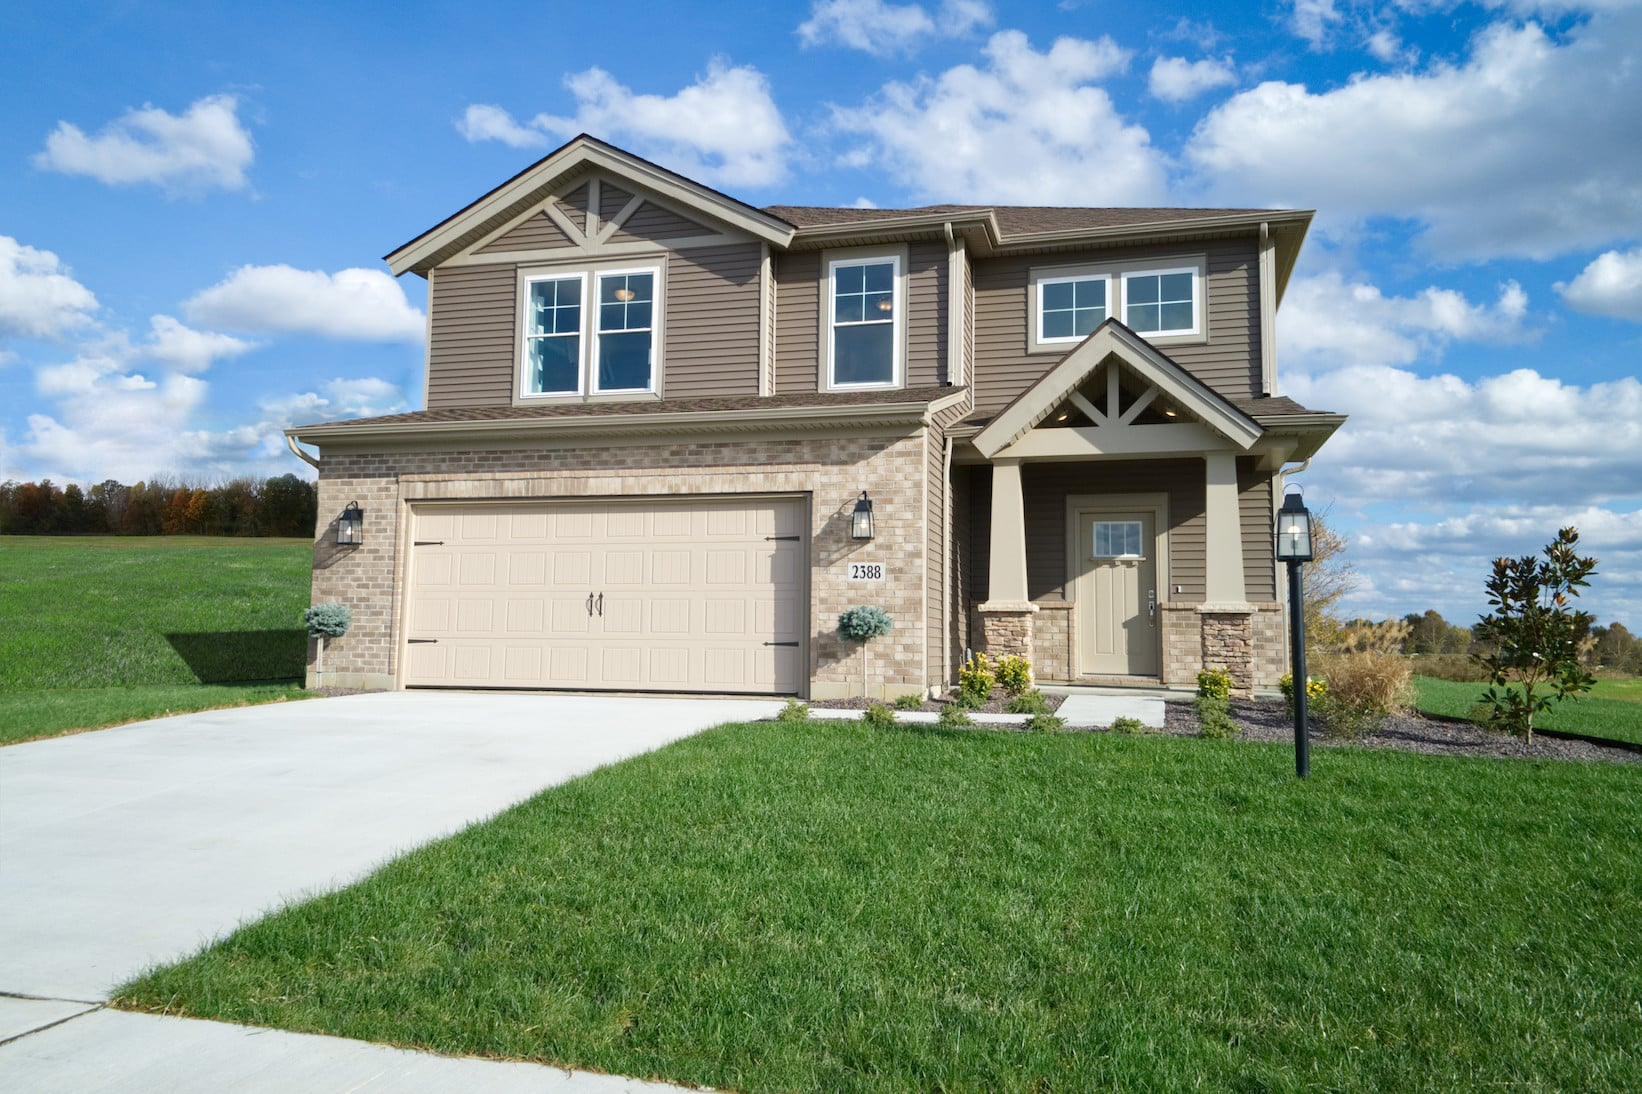 Fall Tour of Homes - The Legends at Bluegrass Commons | Cumberland Craftsman | 2388 Monroe Avenue, 42301